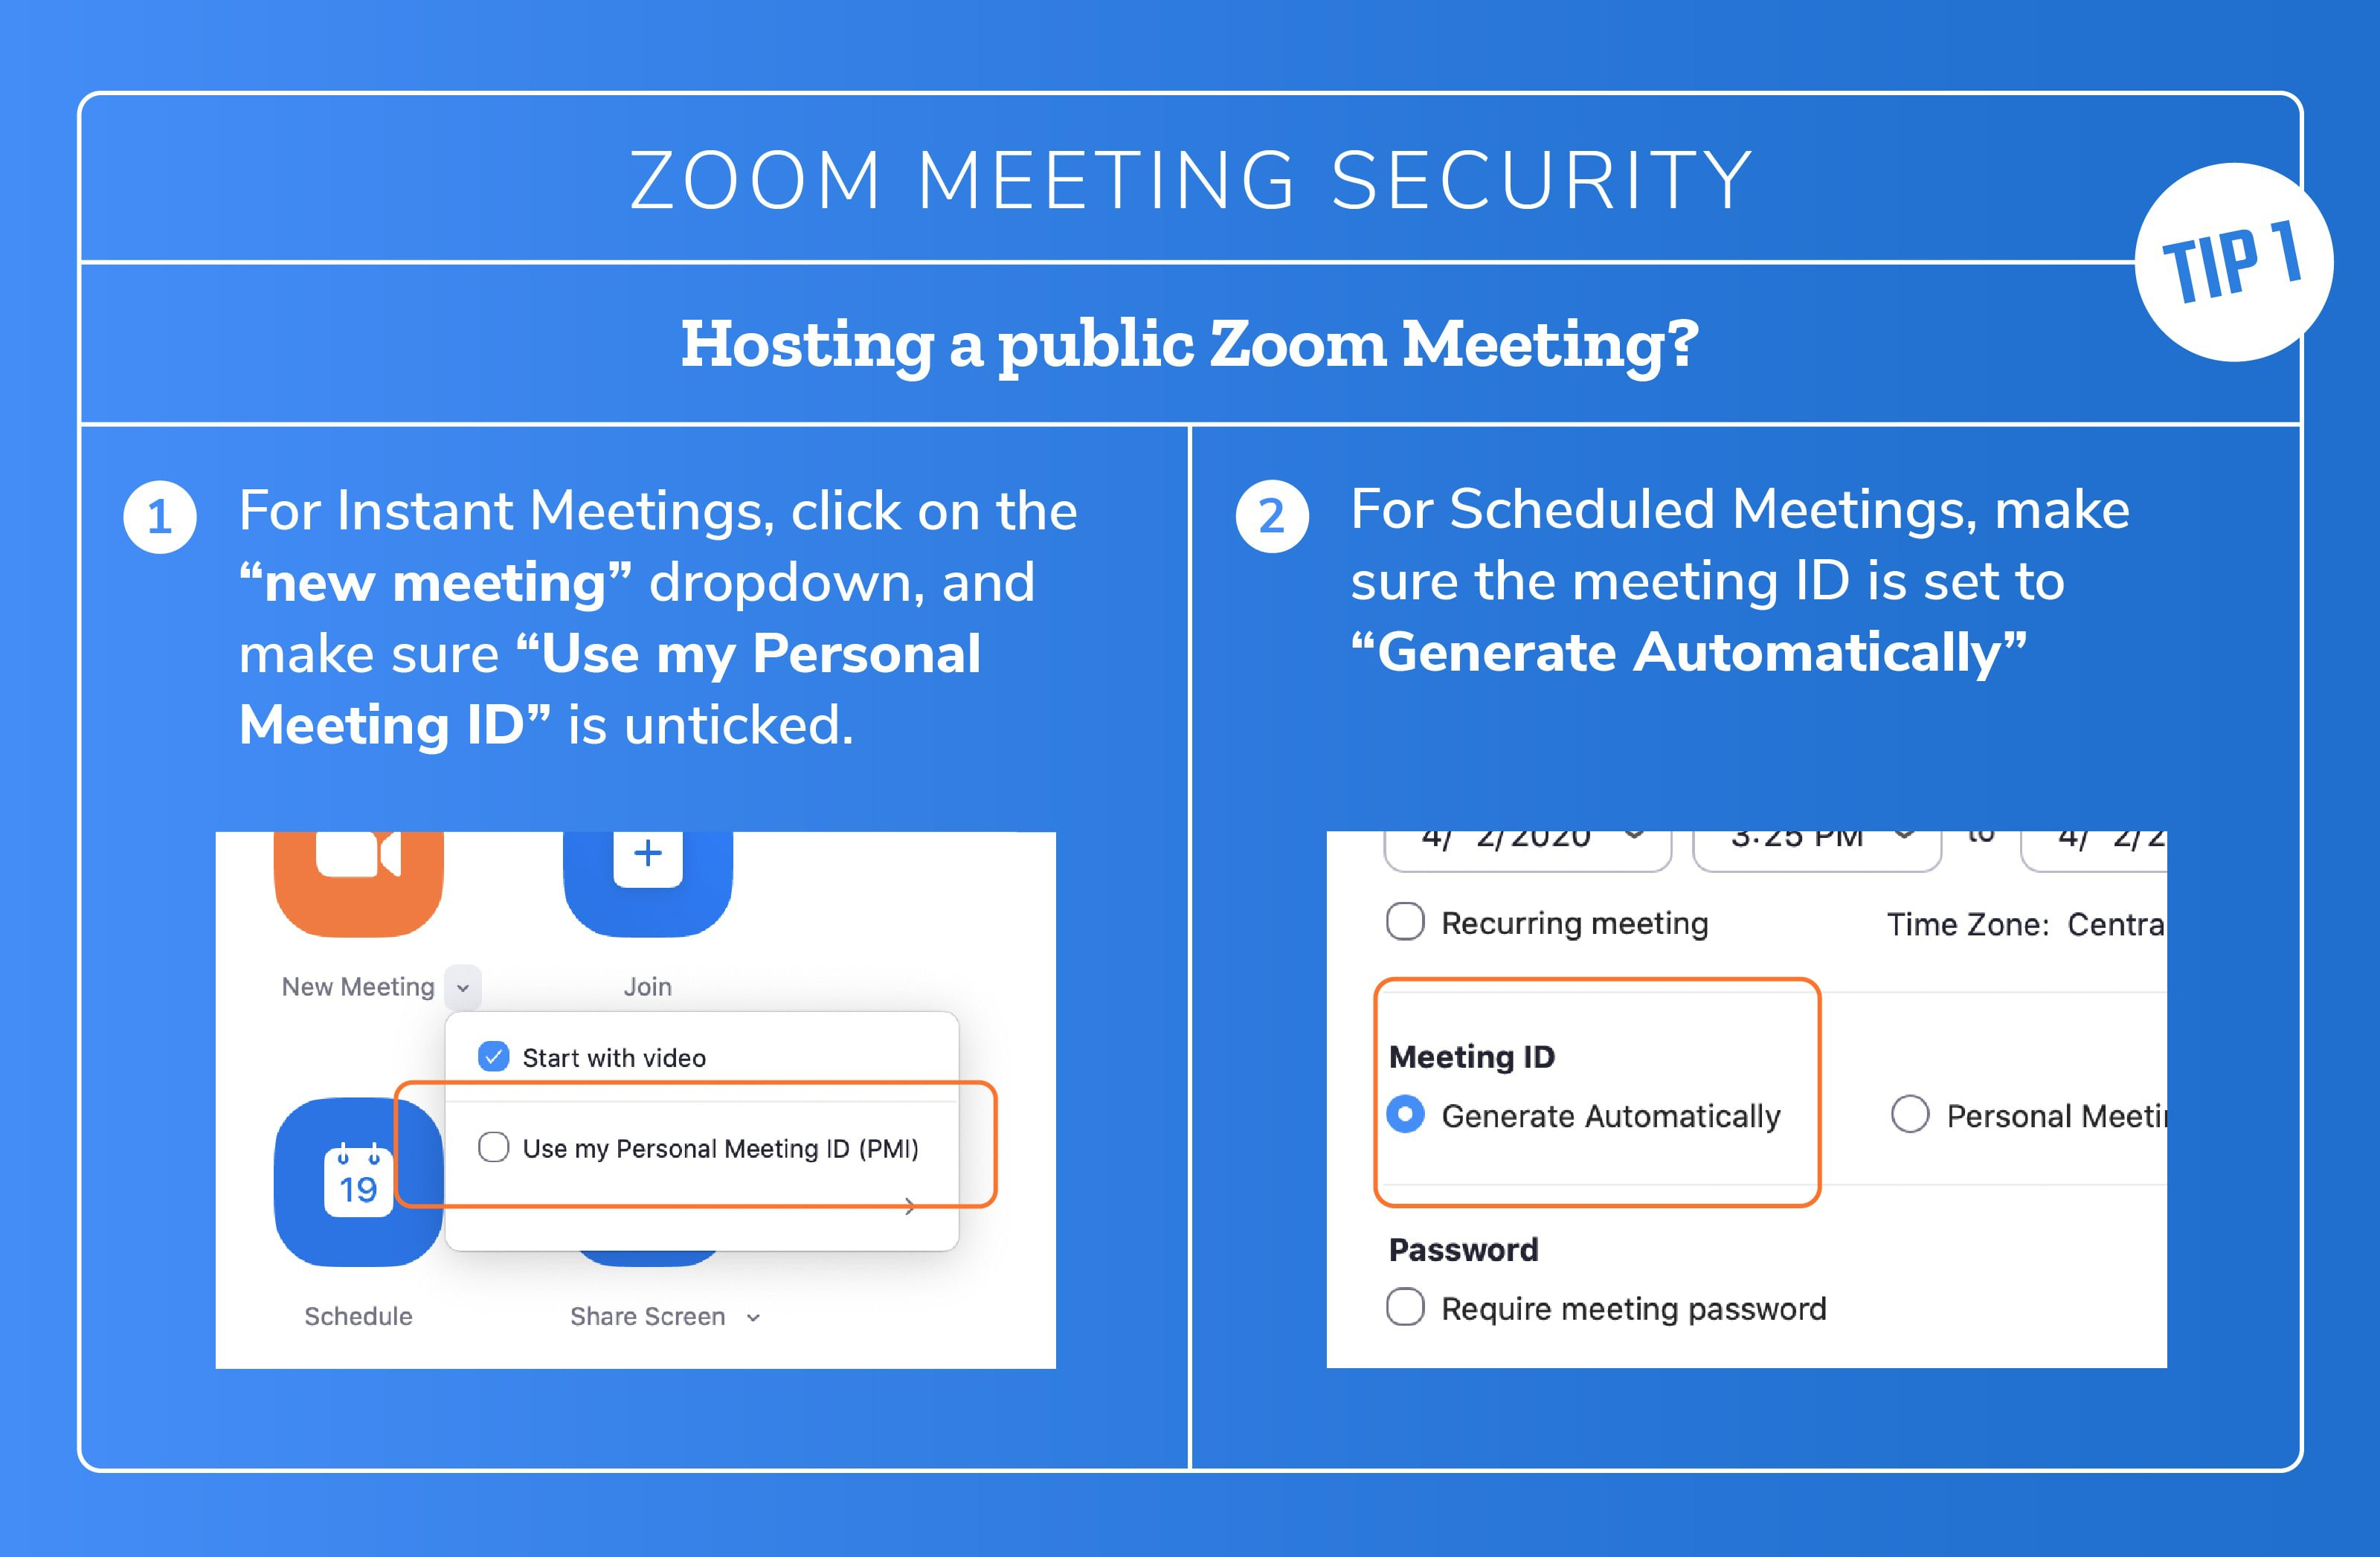 How to generate a random Zoom meeting ID